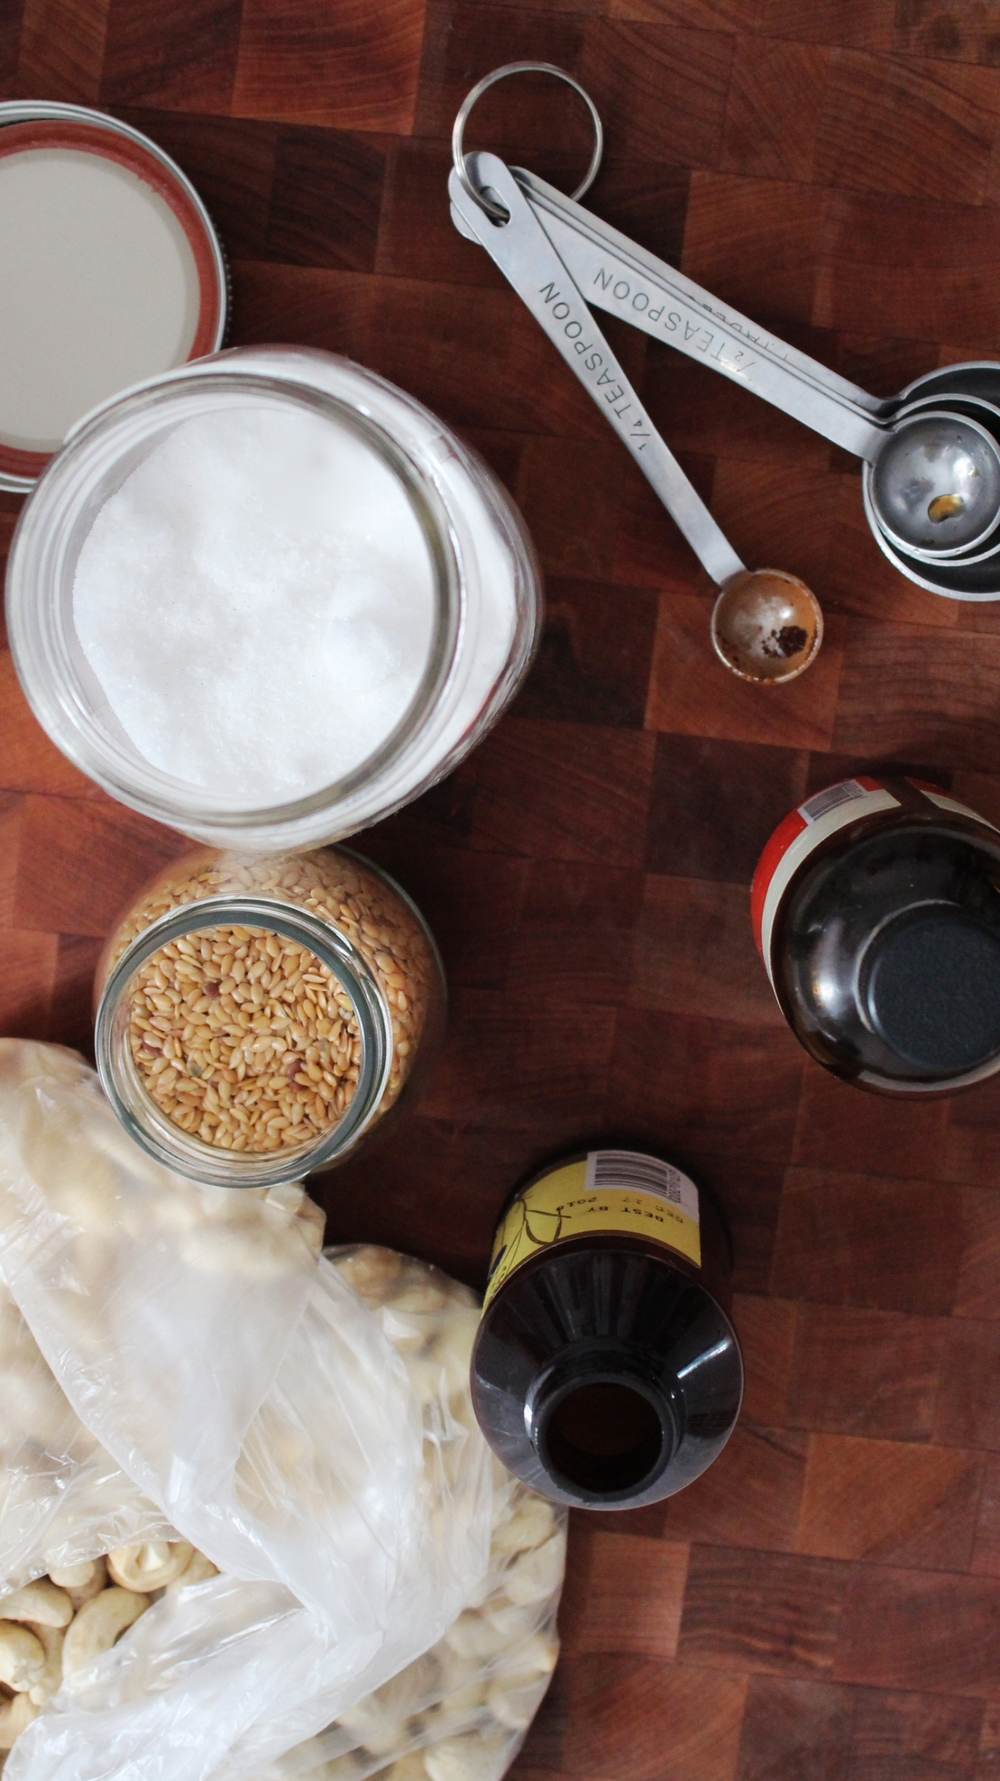 Step 4: Drain cashews and dates and add to food processor along with the remaining ingredients.